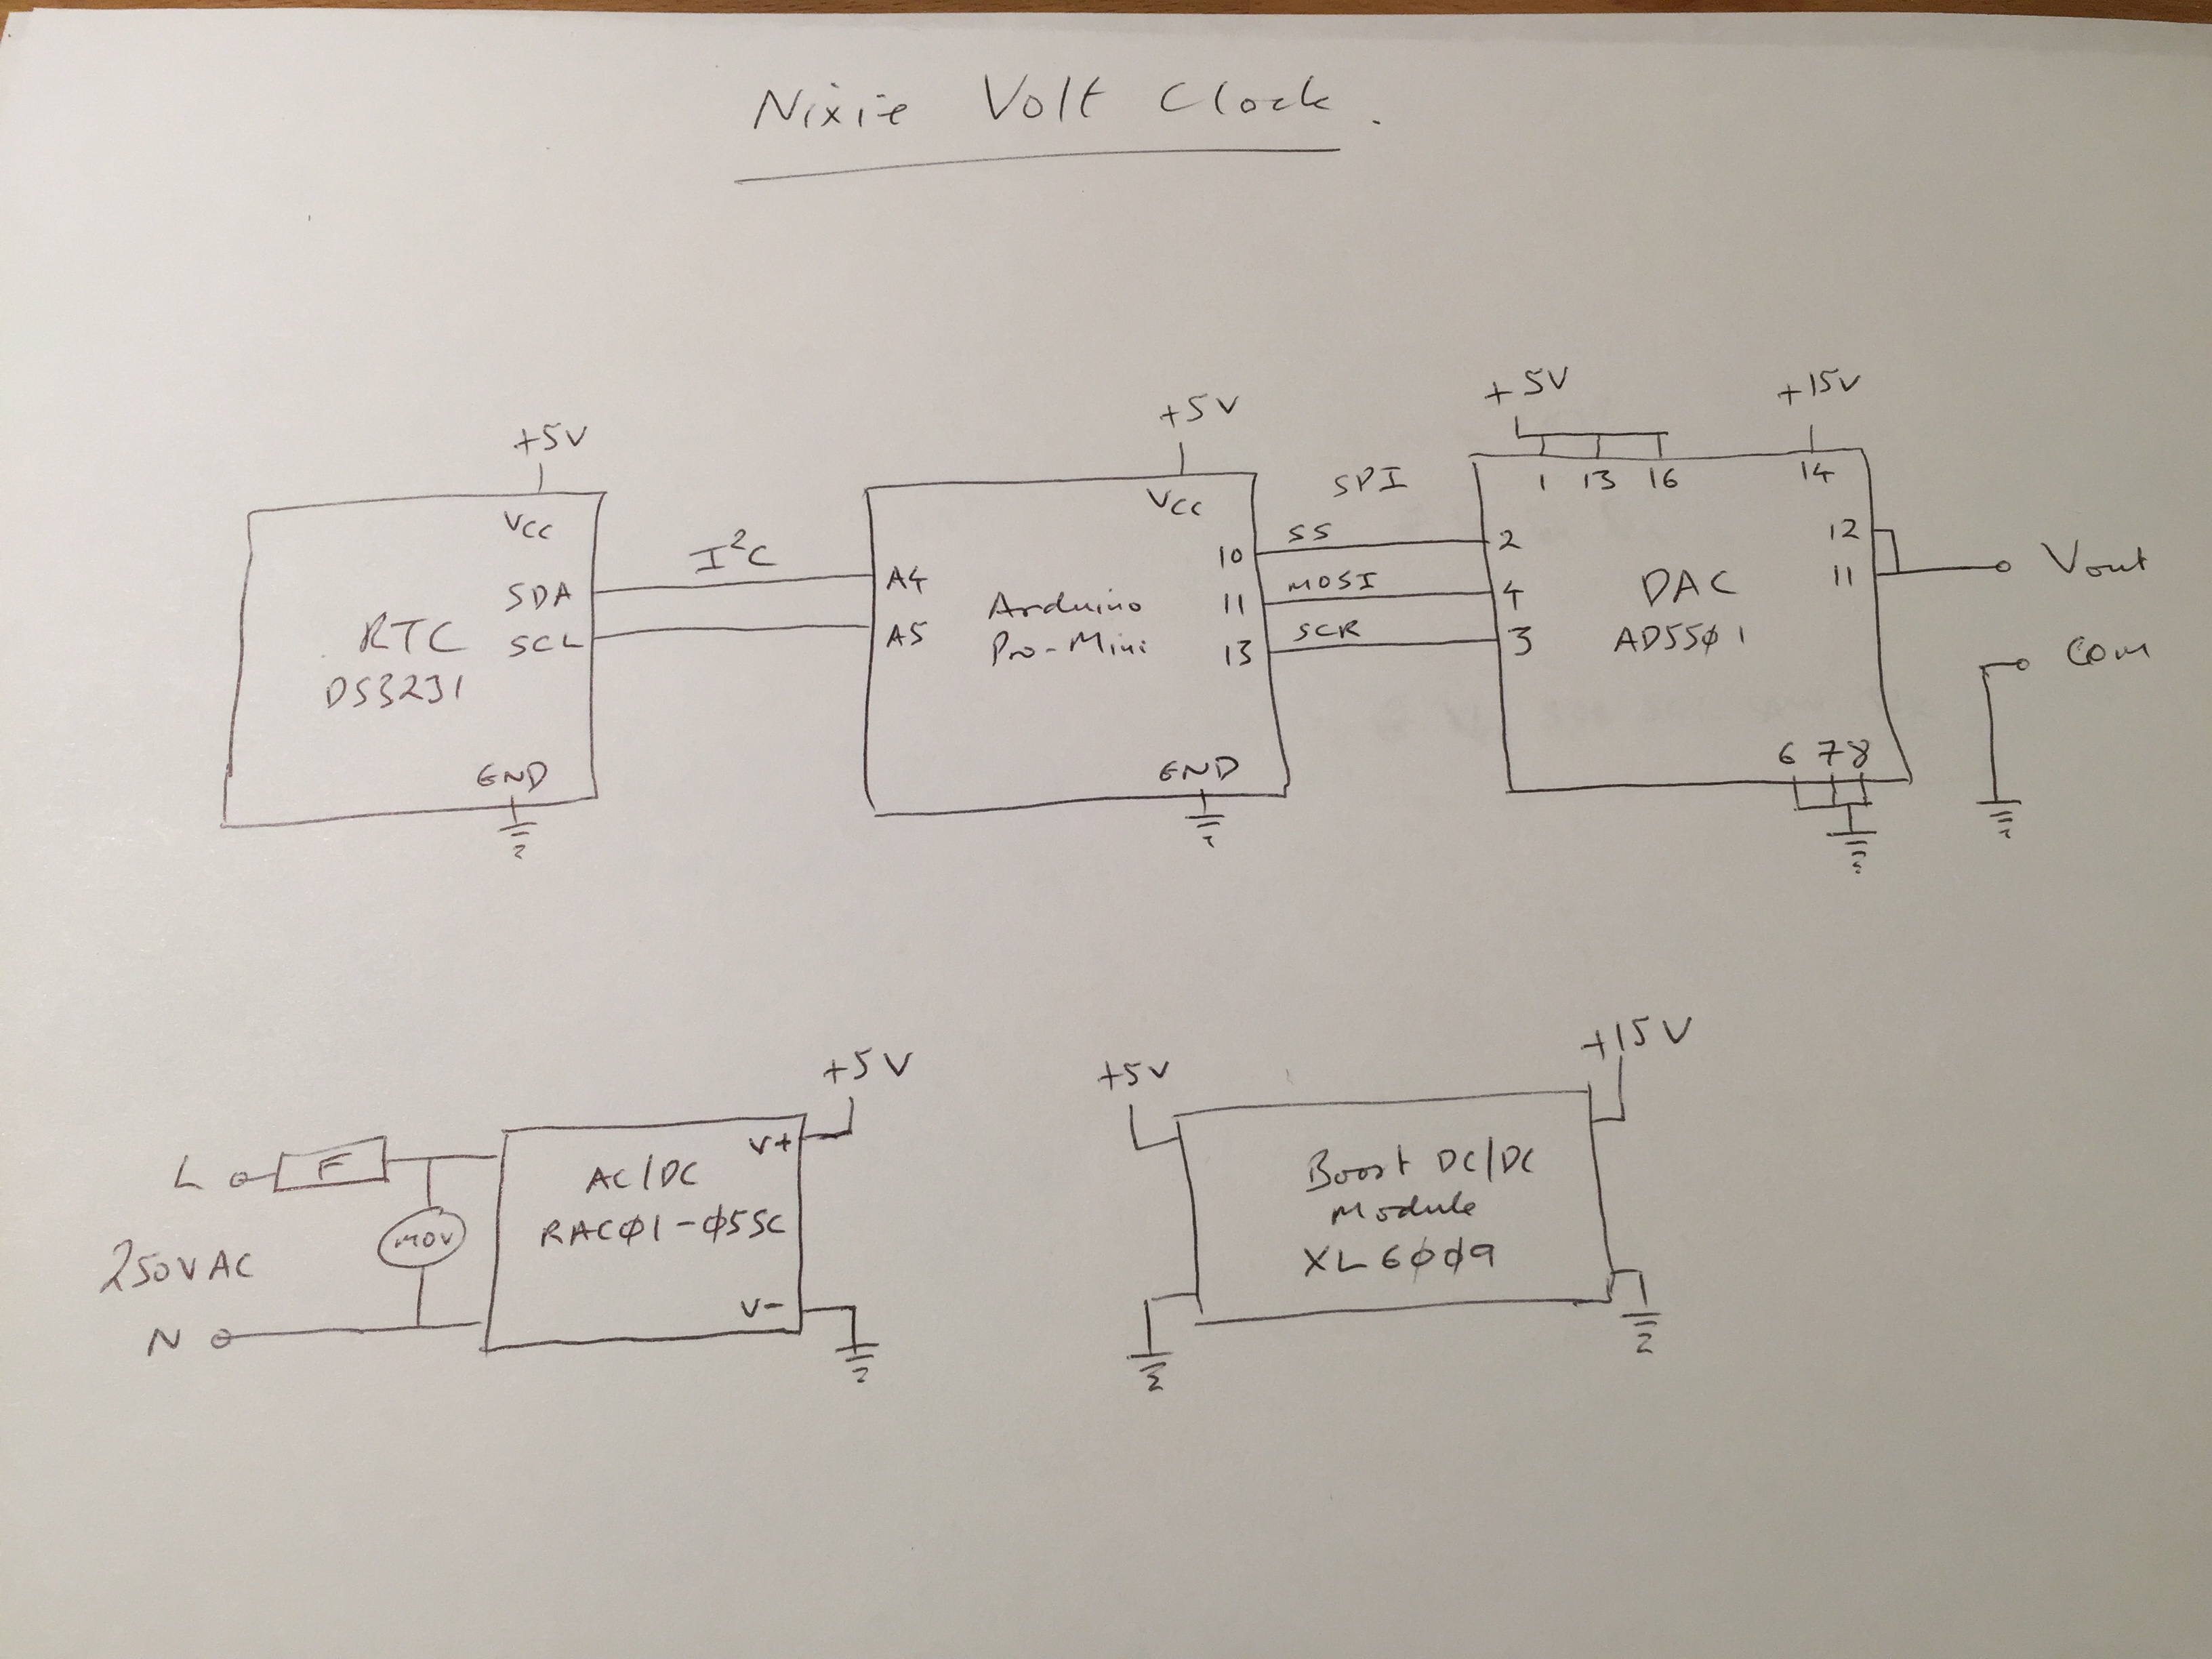 Nixie Voltmeter Clock Ynformatics Schematic Each Minute On The Display Corresponds To 10mv So Dac Must Be At Least This Resolution I Used An Ad5501 Which Has 12bit And Can Work Up